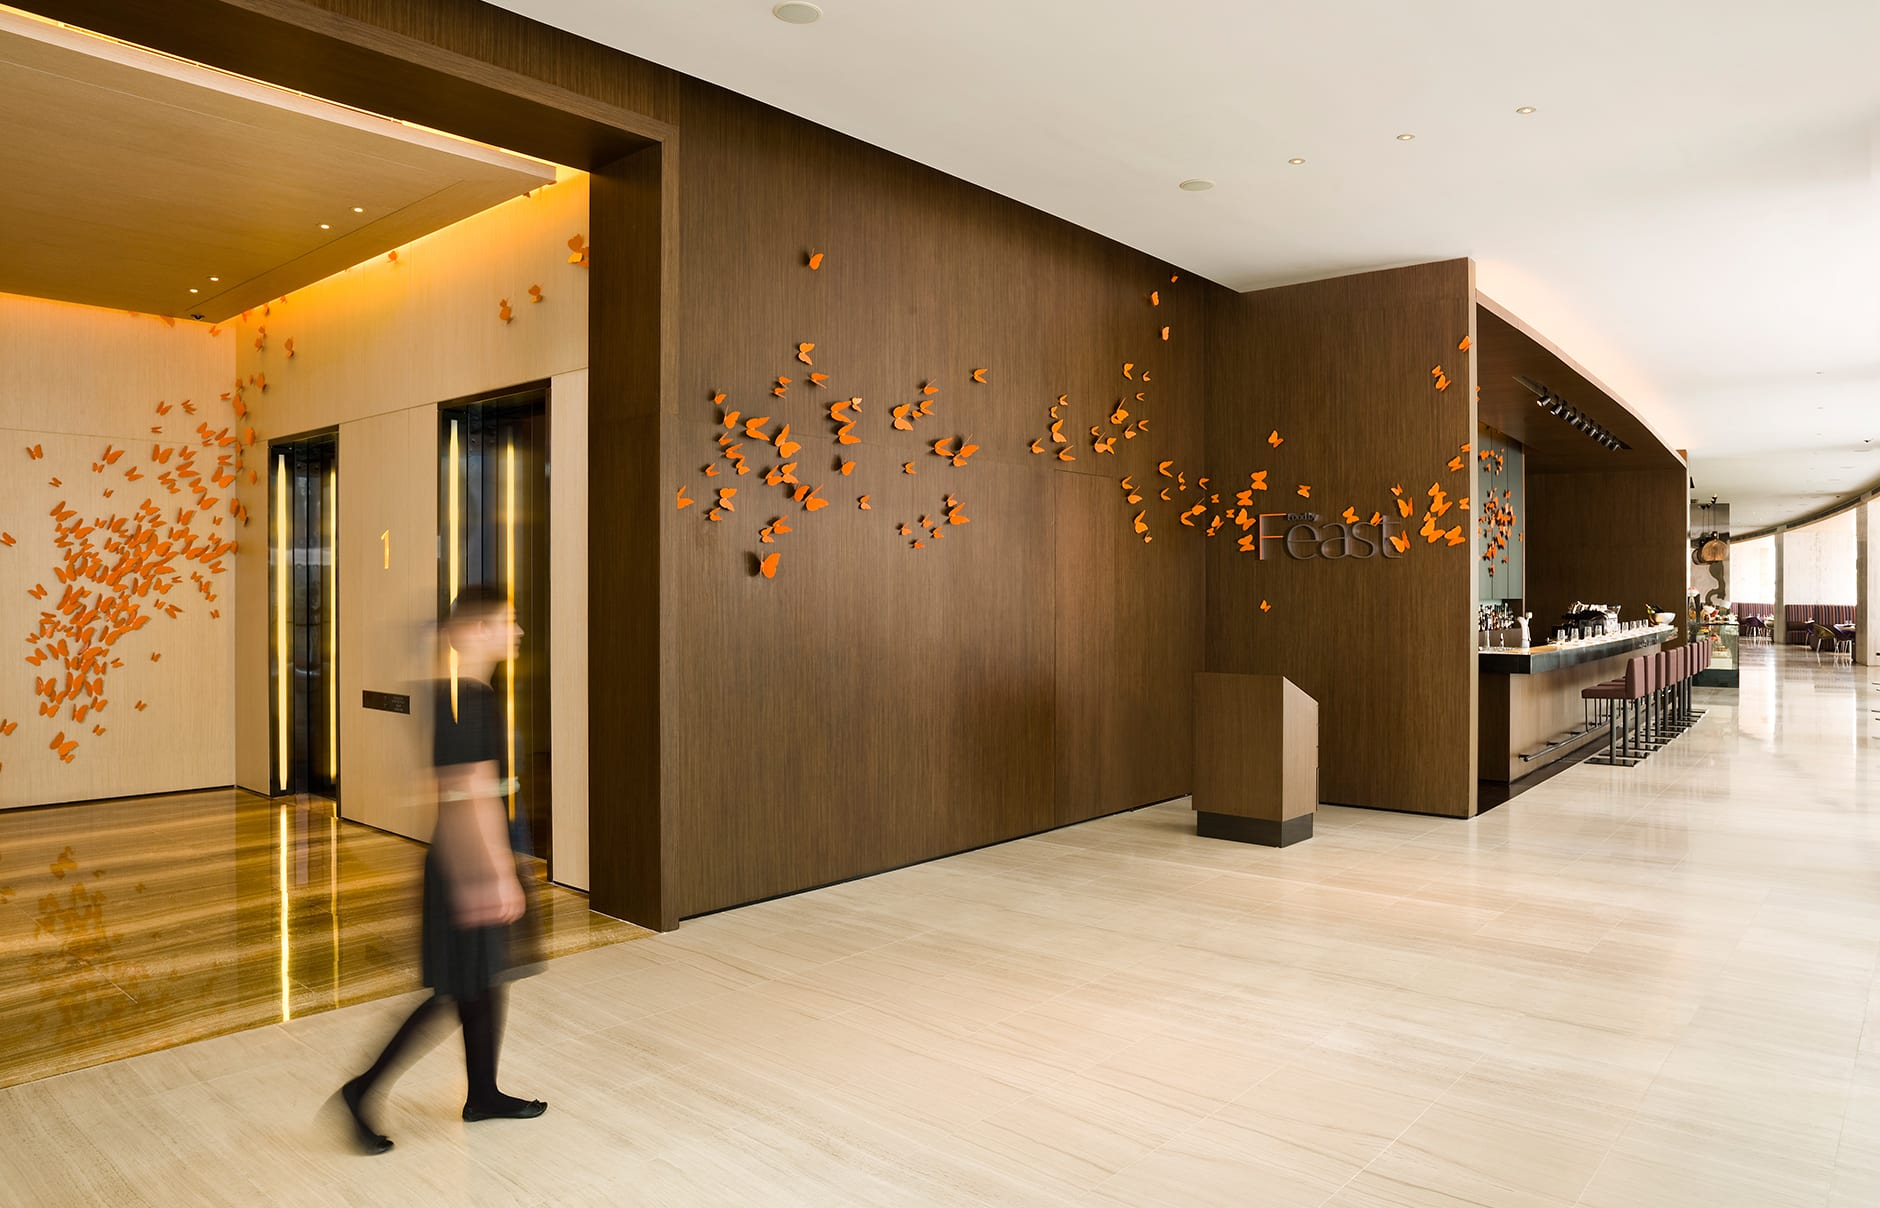 Butterly effect. EAST, Hongkong. © Swire Hotels